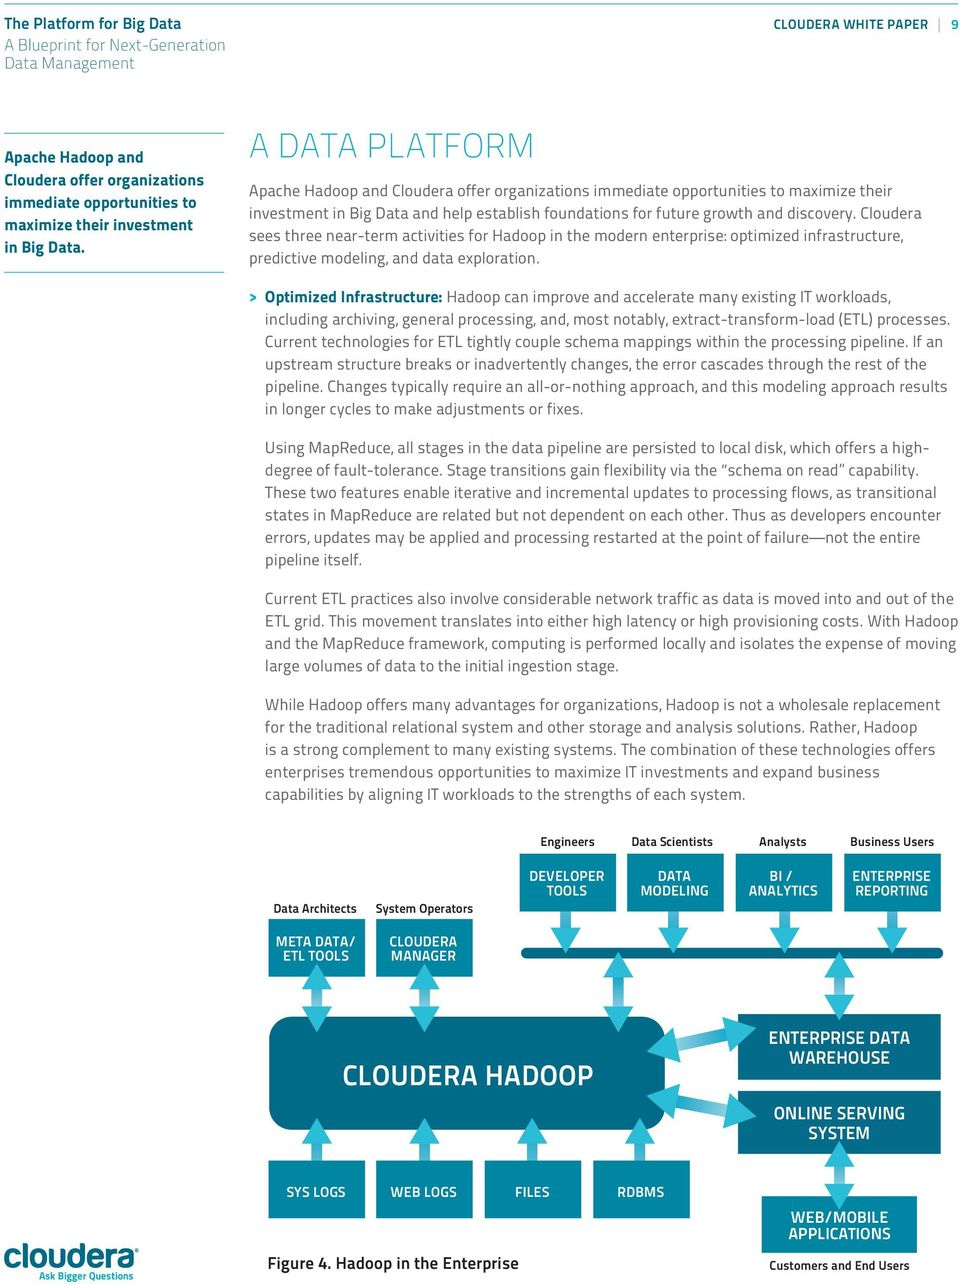 Cloudera sees three near-term activities for Hadoop in the modern enterprise: optimized infrastructure, predictive modeling, and data exploration.